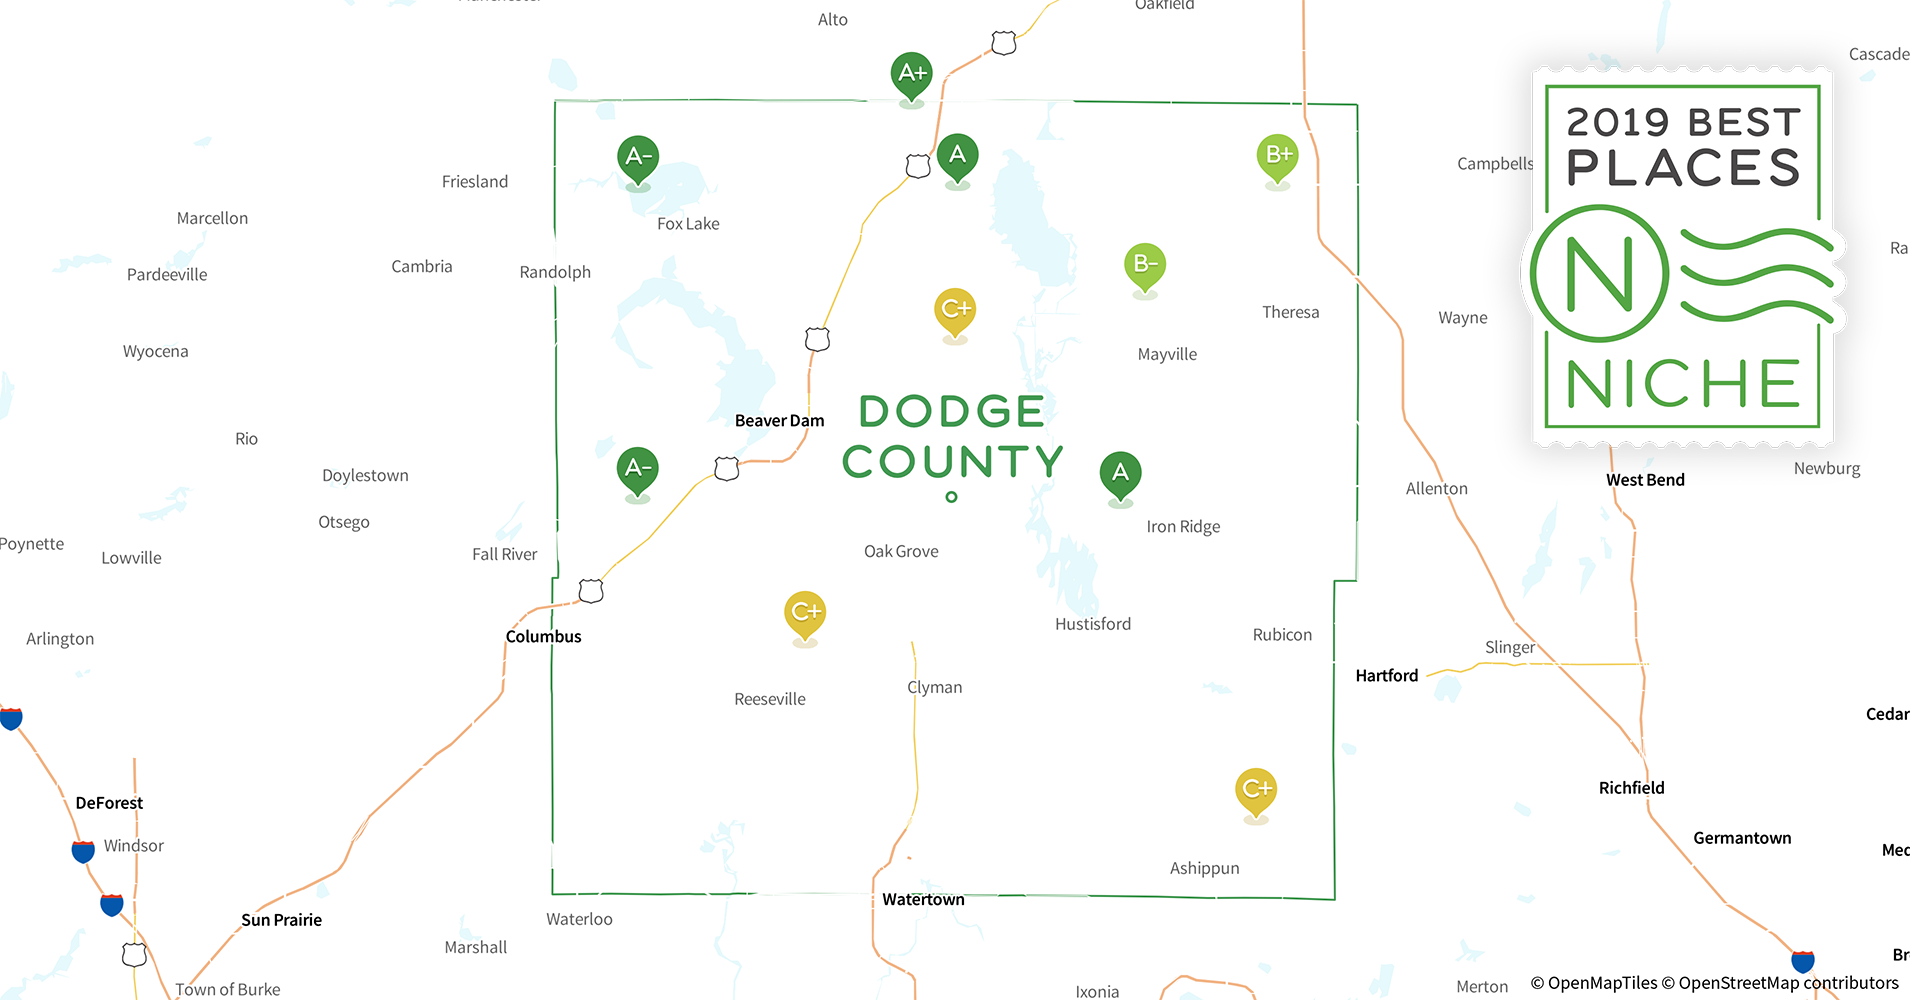 2019 Best Places to Live in Dodge County, WI - Niche Dodge County Wi Map on columbia co wi map, rock county wi map, fond du lac county wi map, falls marinette county wi map, dunn county snowmobile map, fond du lac, kenosha county, dane county, door county wi map, rock county, vernon county, la crosse, racine county, florence county wi map, town of dunn wi map, door county, city of racine wi map, iron ridge map, monroe county, wisconsin map, marinette county, jefferson county wi map, columbia county, milwaukee county, washington county, dane county wi map, menominee county wi map, sauk prairie wi map, kewaunee county townships map, south central wi map, jefferson county, columbia county wi map, washington county wi map, grant county, green lake wi map, waukesha county, beaver dam,